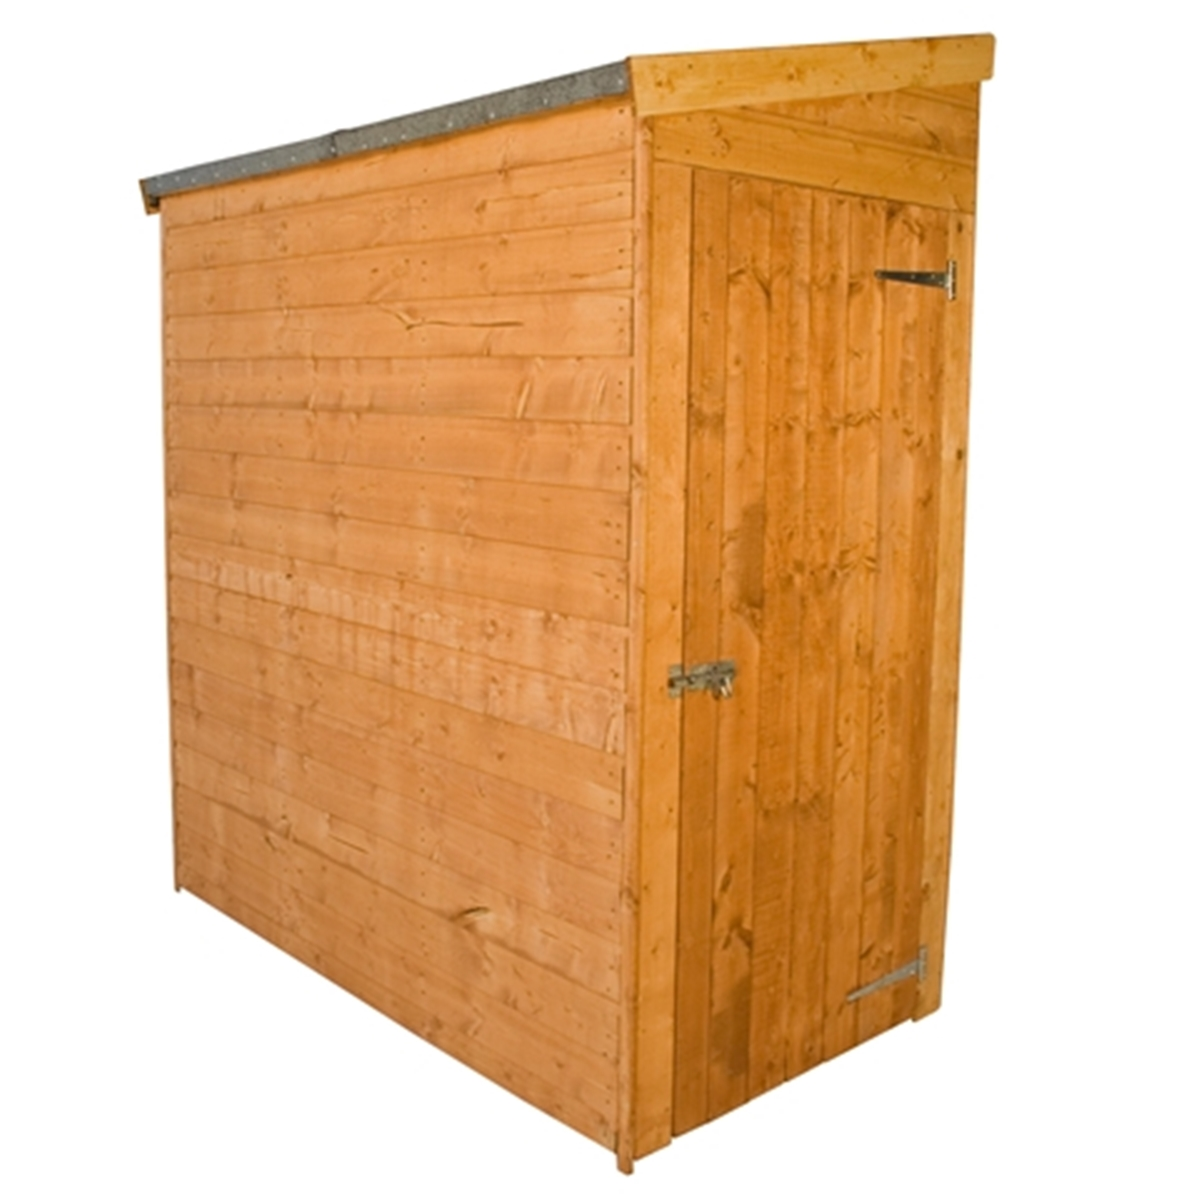 escape 6 x 3 tongue and groove wooden tall pent garden shed no front doors with universal side door 10mm solid osb floor 48hr sat delivery